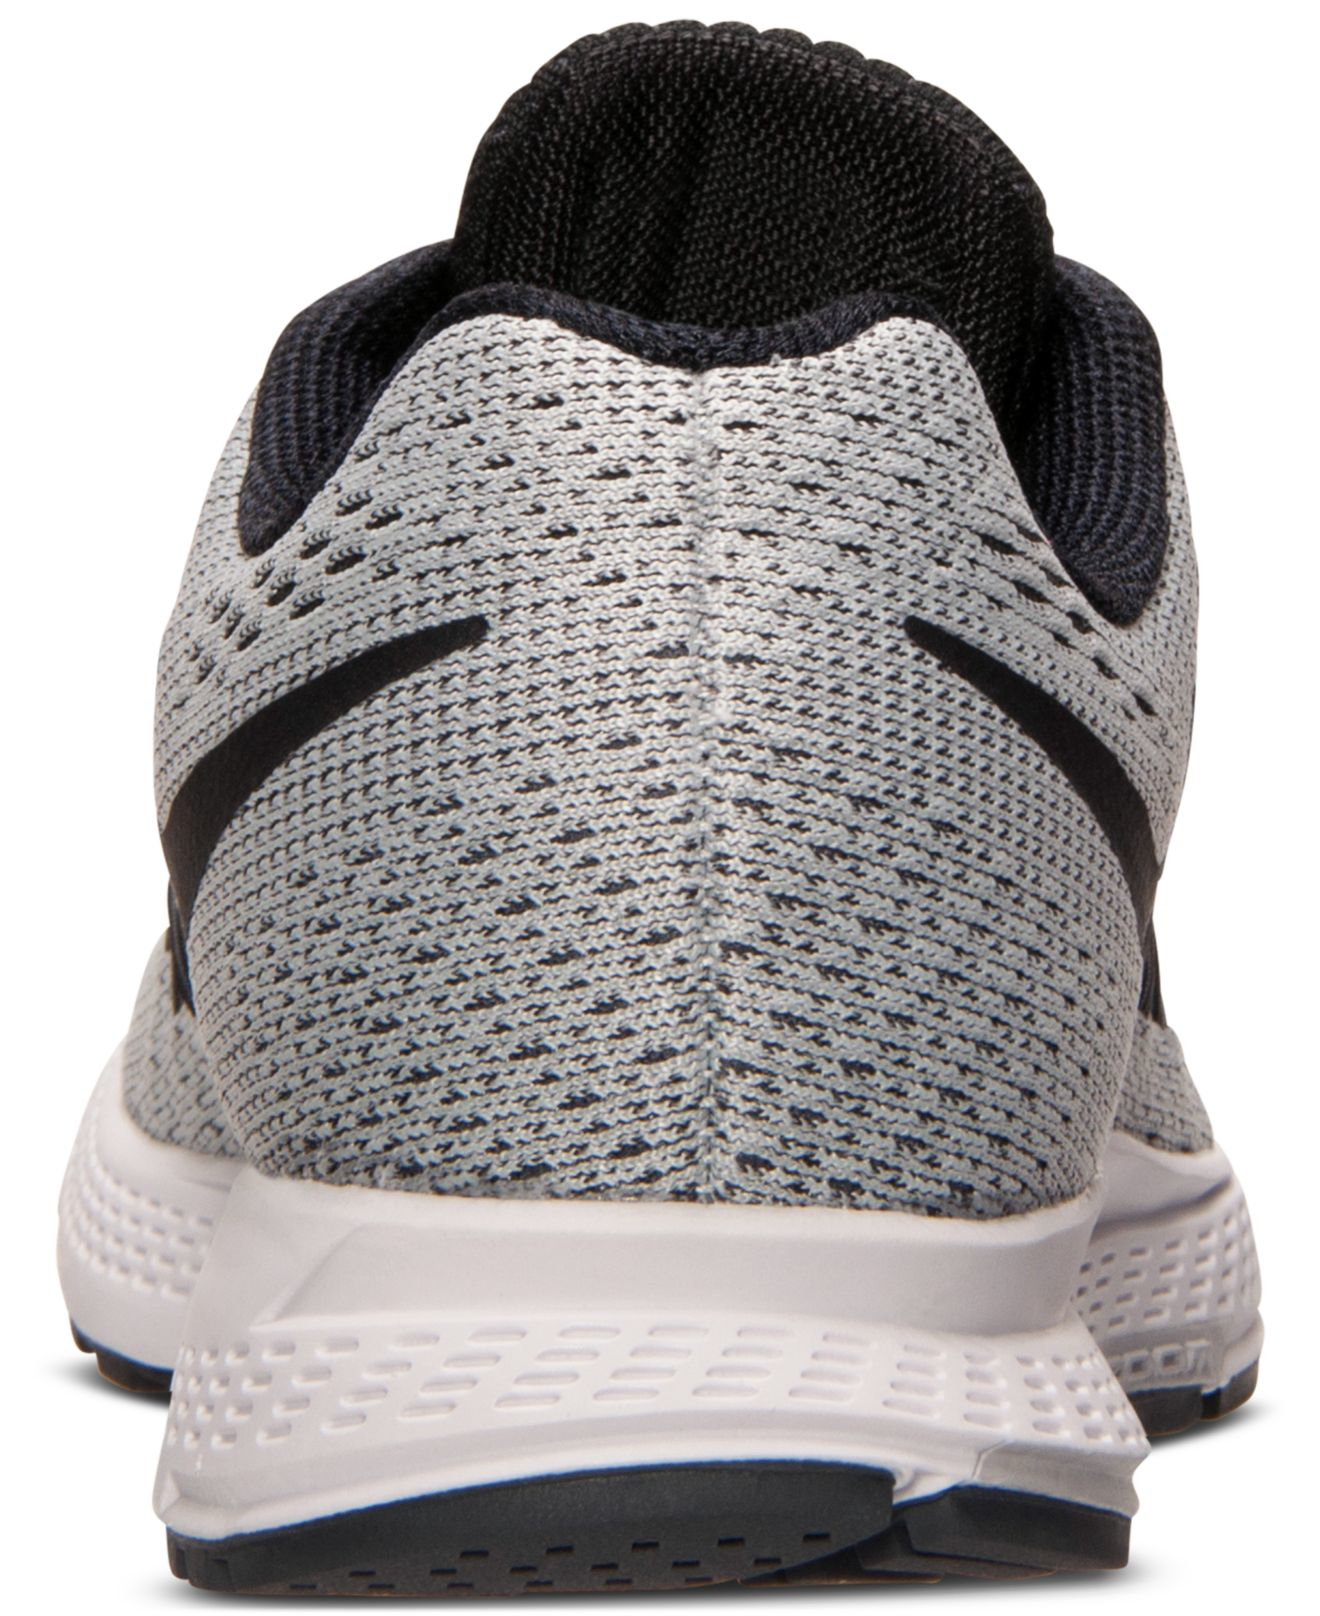 3b31b303ed3 ... closeout lyst nike womens zoom pegasus 32 running sneakers from finish  line in gray 98675 19634